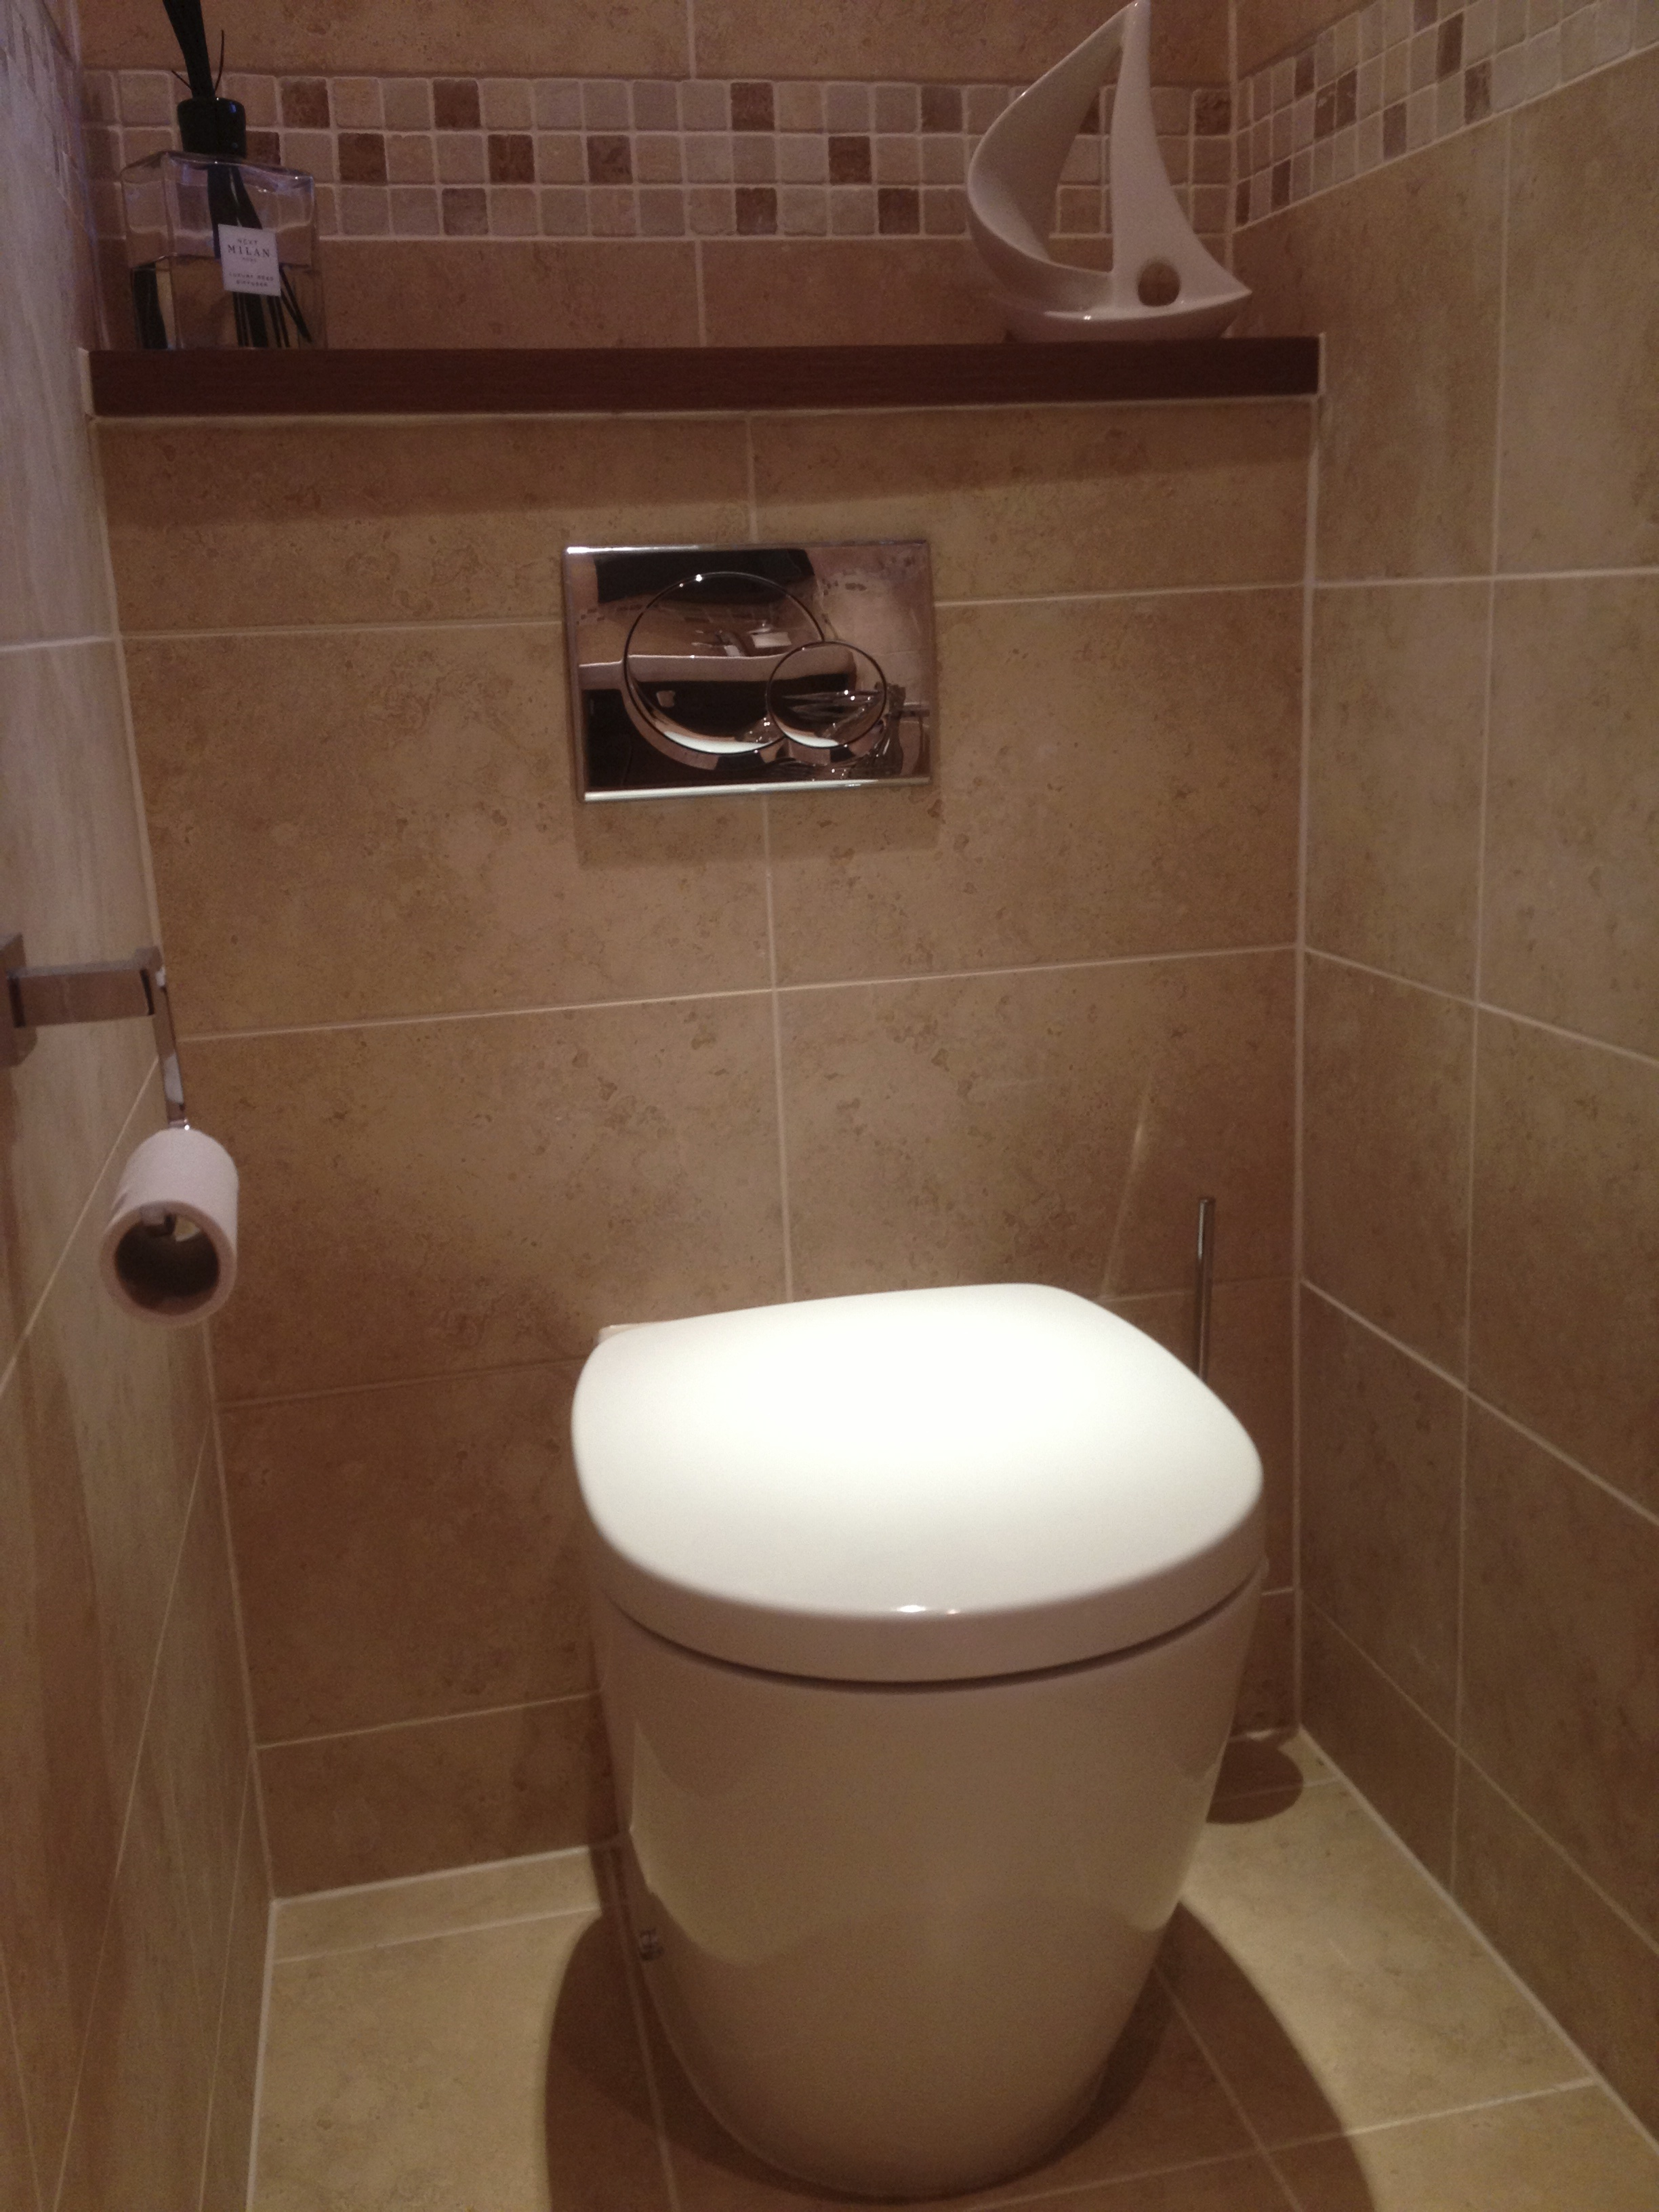 Bespoke built-in Toilet and Cistern.